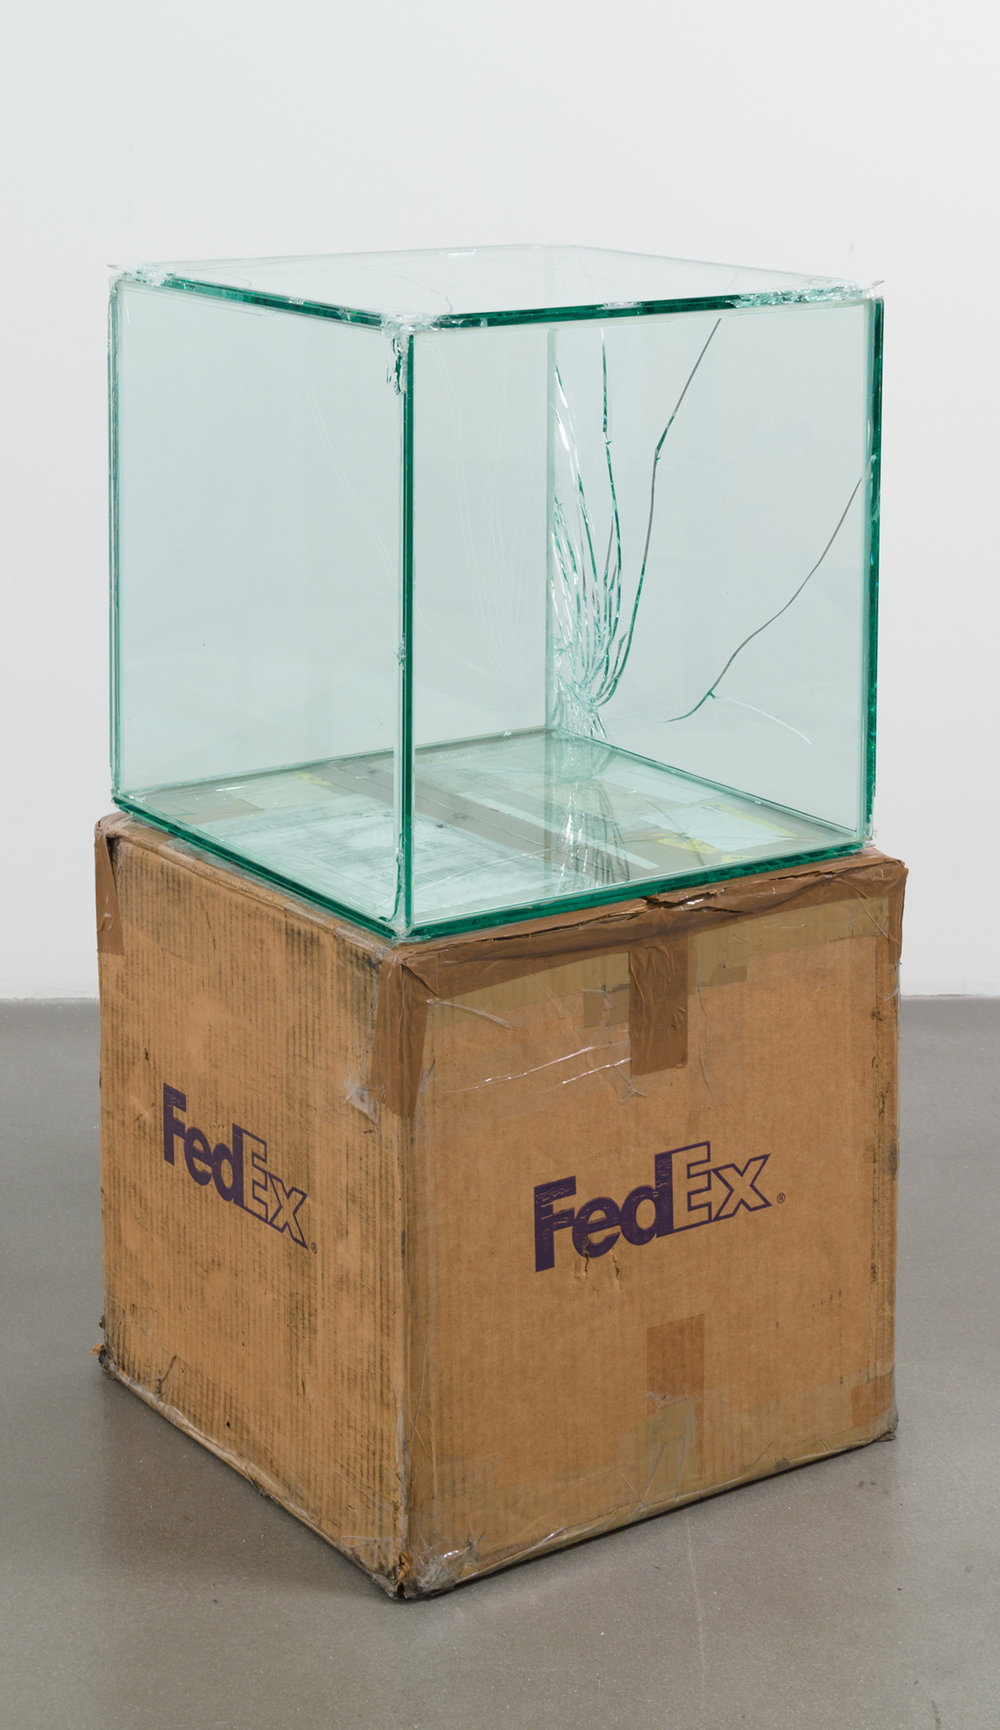 FedEx Kraft Box 2005 FEDEX 330504 10/05 SSCC, Priority Overnight, Los Angeles–Miami trk#865344981347, October 29–30, 2009, Priority Overnight, Miami–Ann Arbor trk#861049125160, March 3–4, 2009, Standard Overnight, Ann Arbor–Los Angeles trk#868274625738, July 9–10, 2009, International Priority, Los Angeles–London trk#798269126180, April 10–12, 2012, International Priority, London–Los Angeles trk#875532113057, May 22–23, 2012, Standard Overnight, Los Angeles–New York trk#774901766211, November 4–5, 2015, Standard Overnight, New York–Los Angeles trk#775241327453, December 21–22, 2015    2009–   Laminated glass, FedEx shipping box, accrued FedEx shipping and tracking labels, silicone, metal, tape  16 x 16 x 16 inches   Travel Pictures, 2012    Great Hall Exhibition, 2015